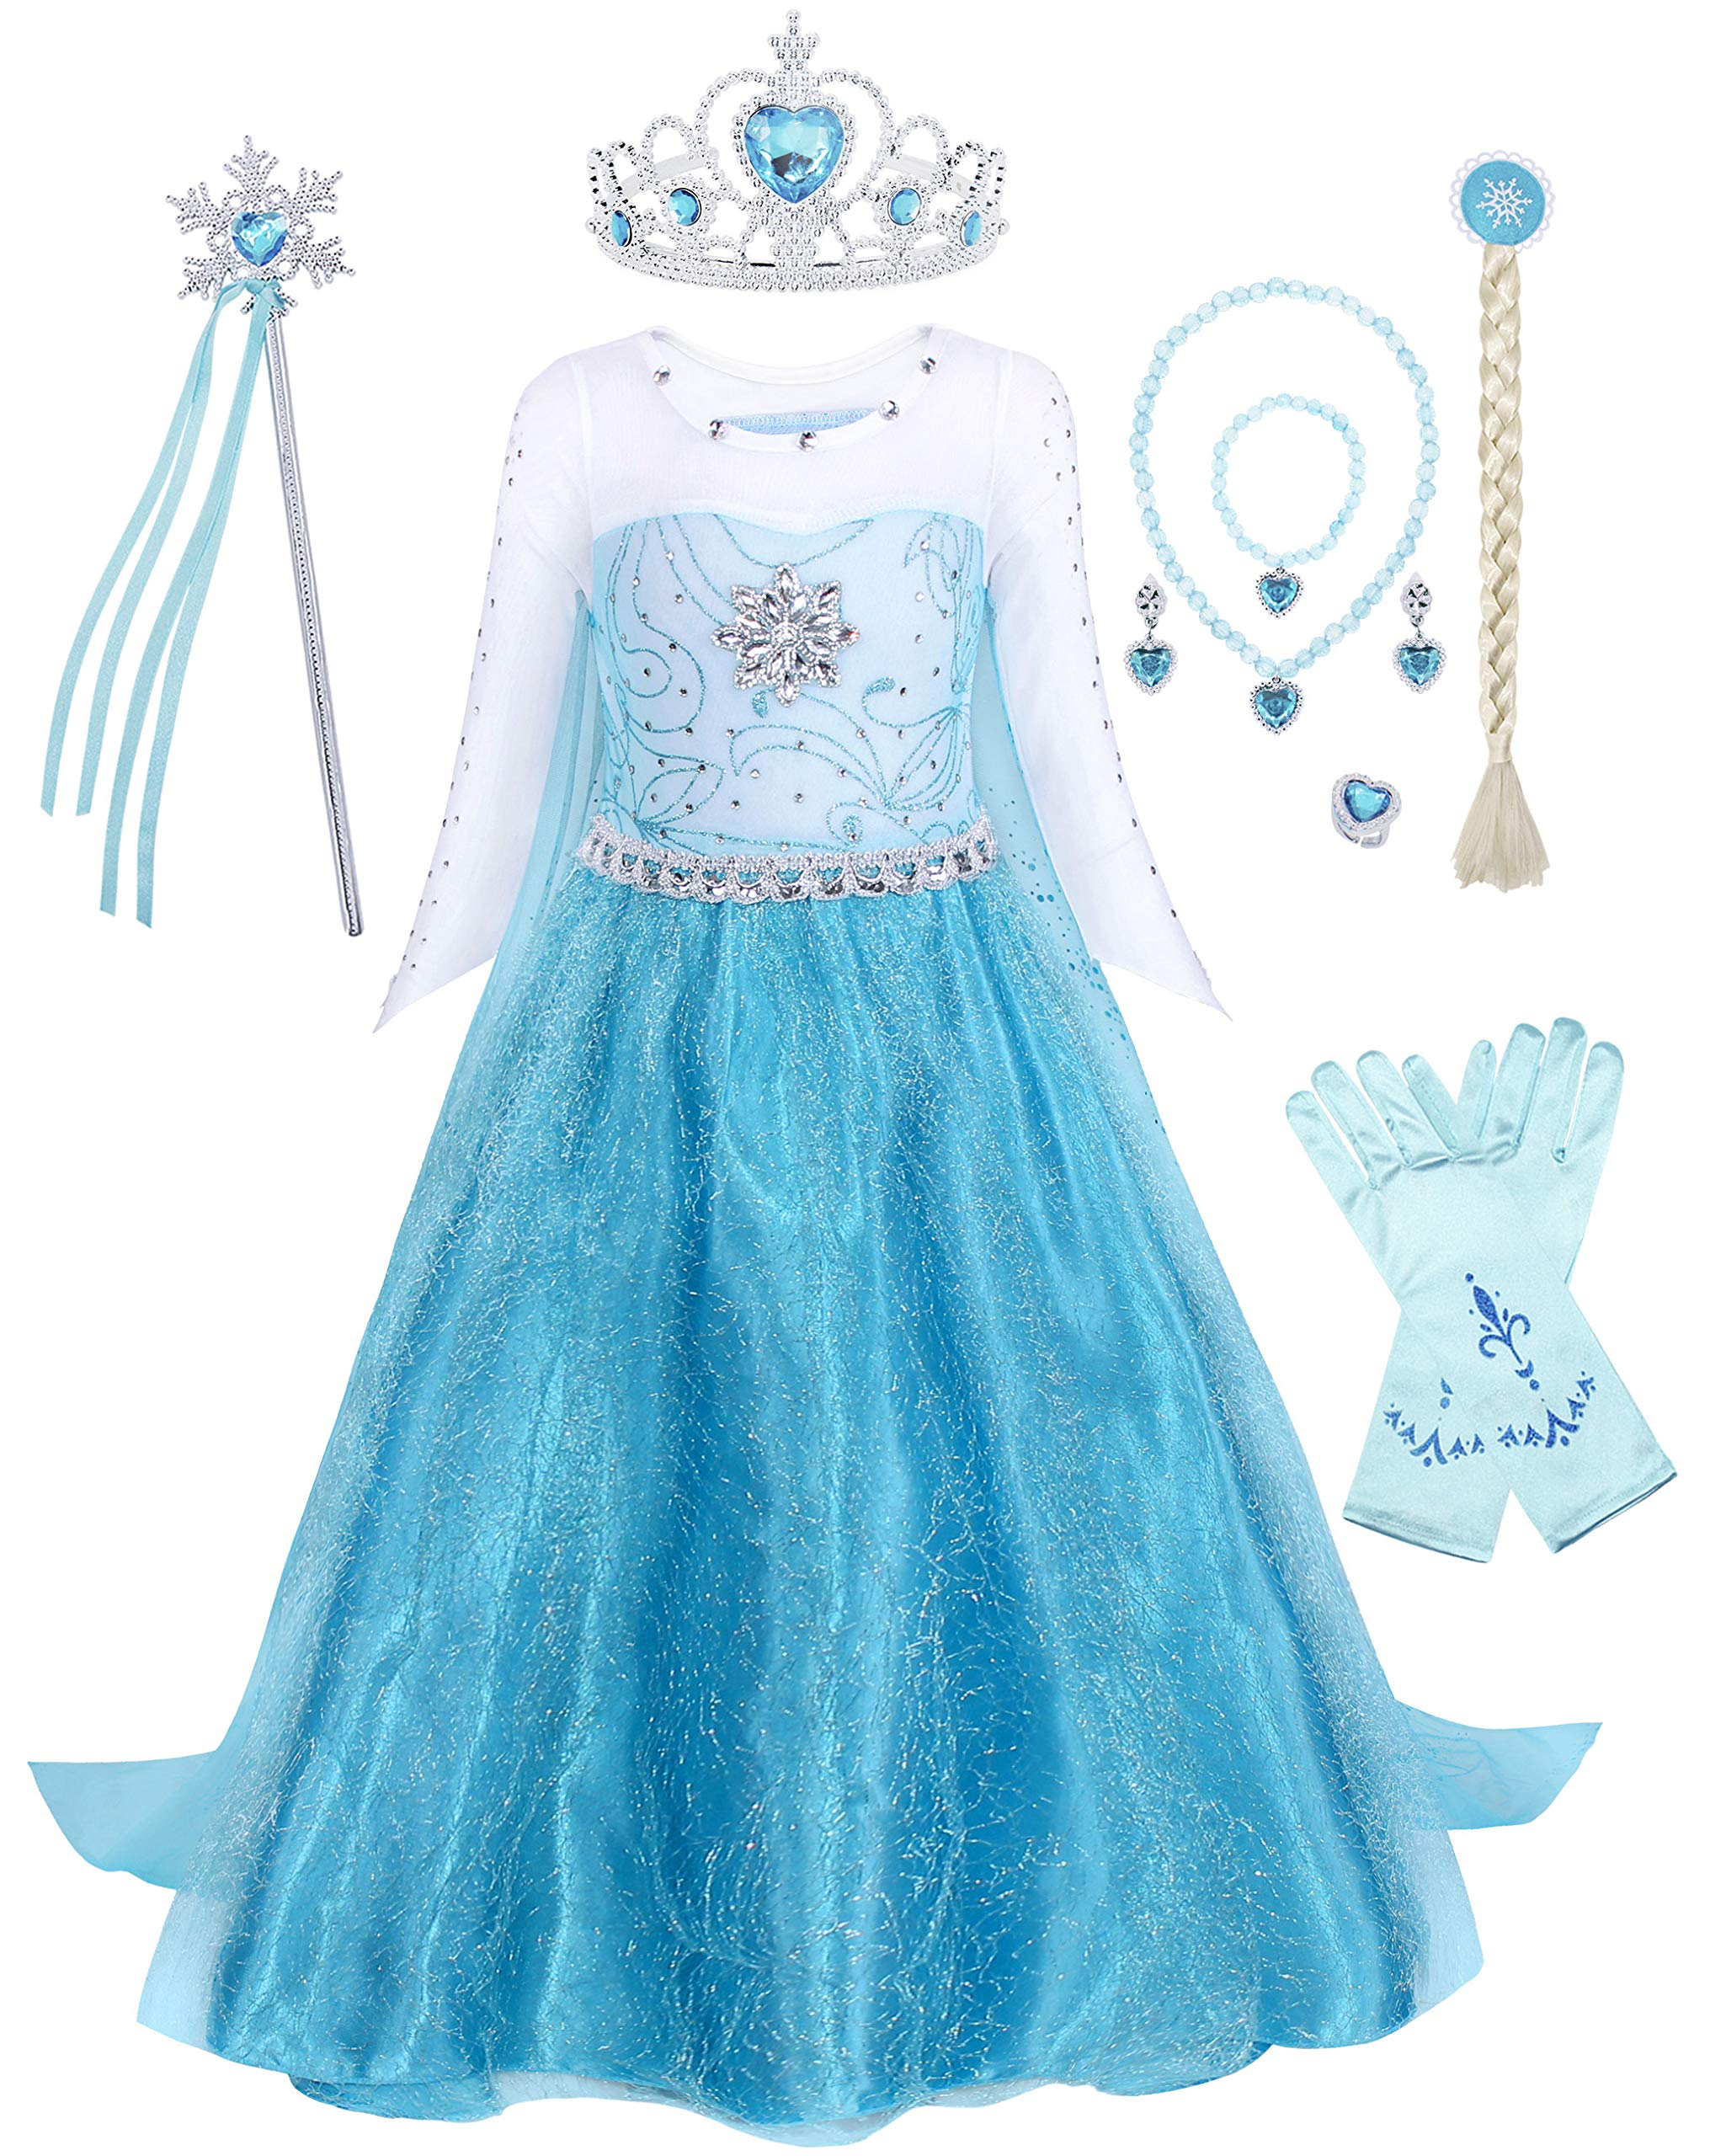 HenzWorld Girl Dress Costume Princess Birthday Party Cosplay Cape Outfits Snowflake Mermaid 2-10 Years